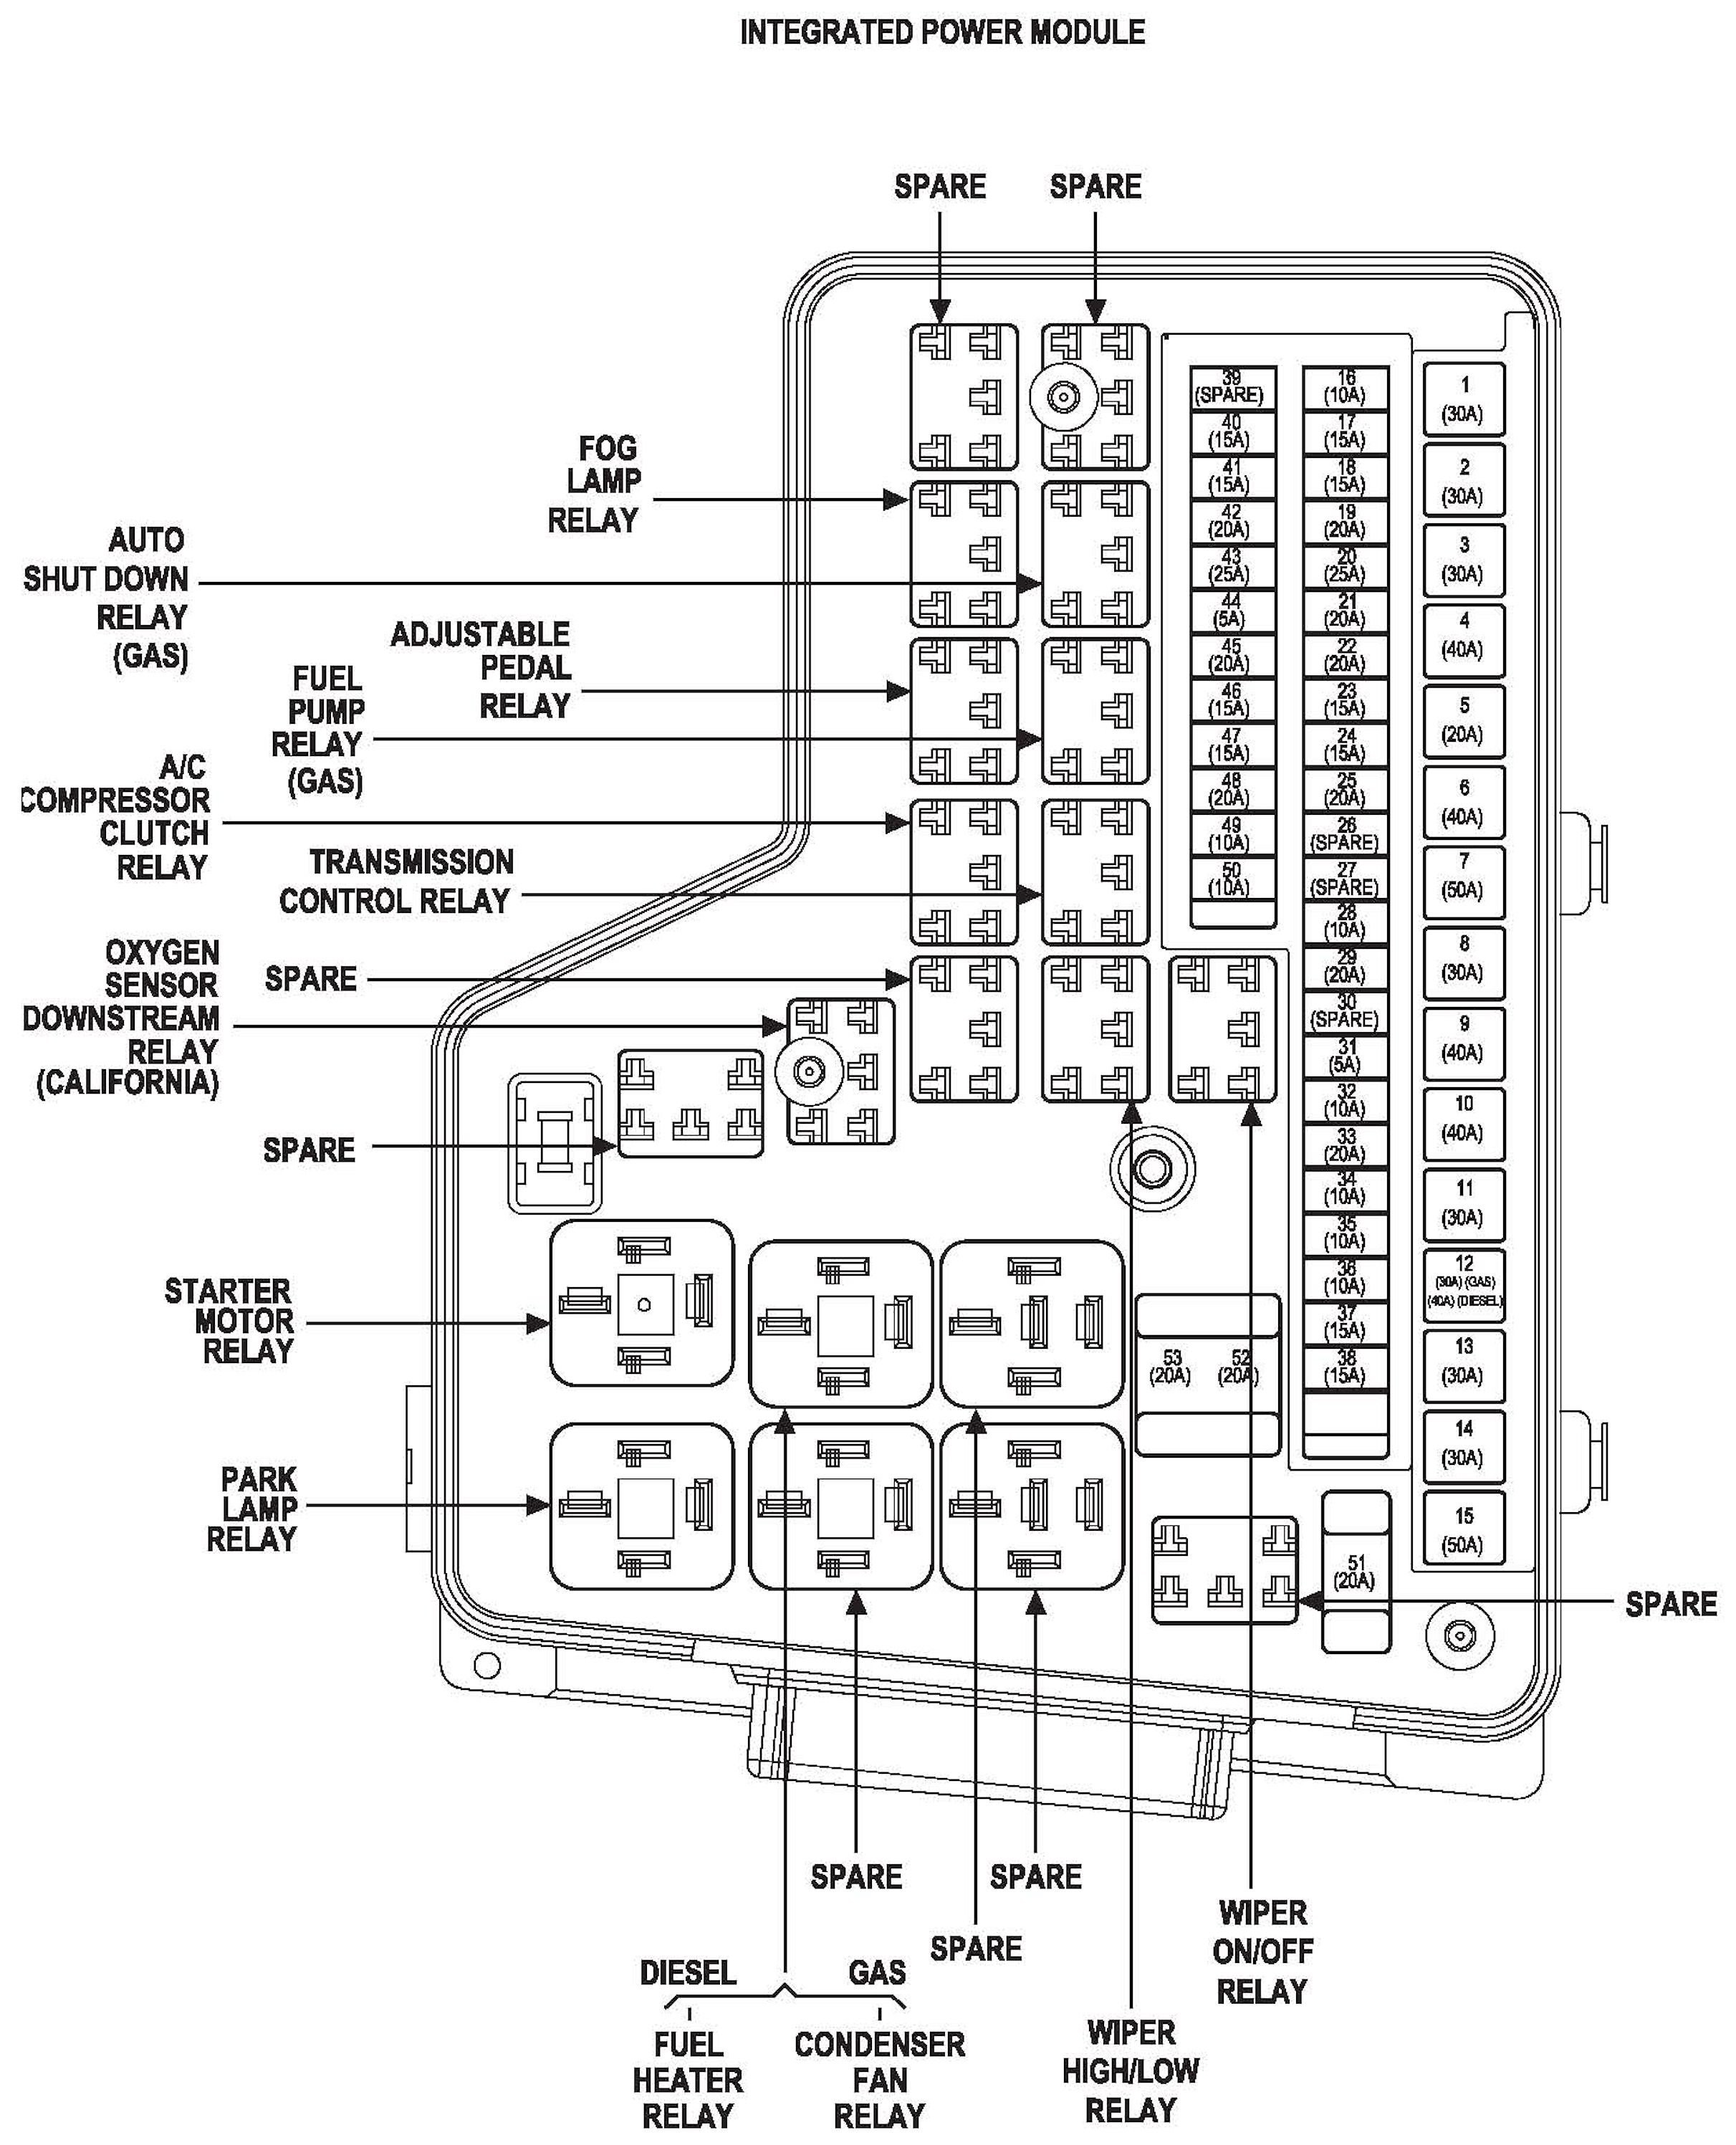 2008 dodge ram 2500 fuse diagram wiring diagram 1999 Dodge Grand Caravan Wiring Diagram fuse diagram for 07 dodge ram 1500 wiring diagram2003 dodge ram 1500 fuse diagram data wiring